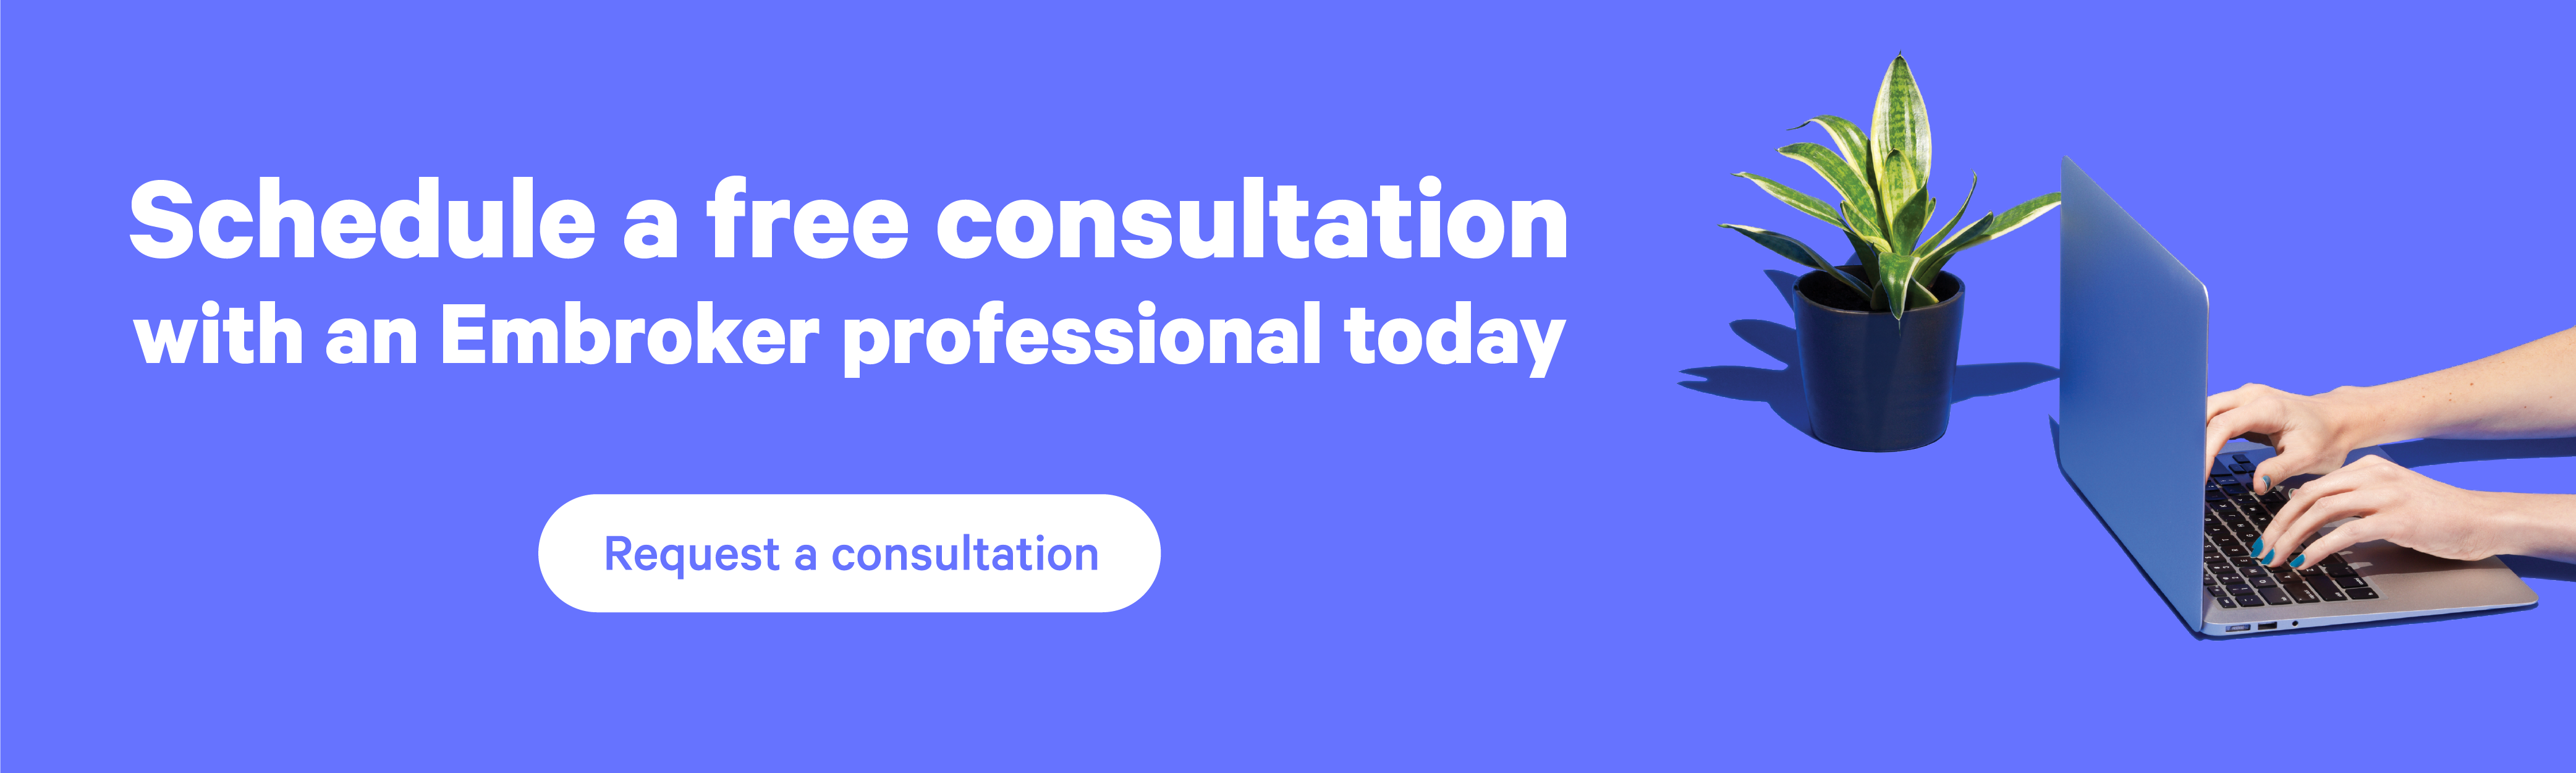 schedule a free consultation with an Embroker professional button